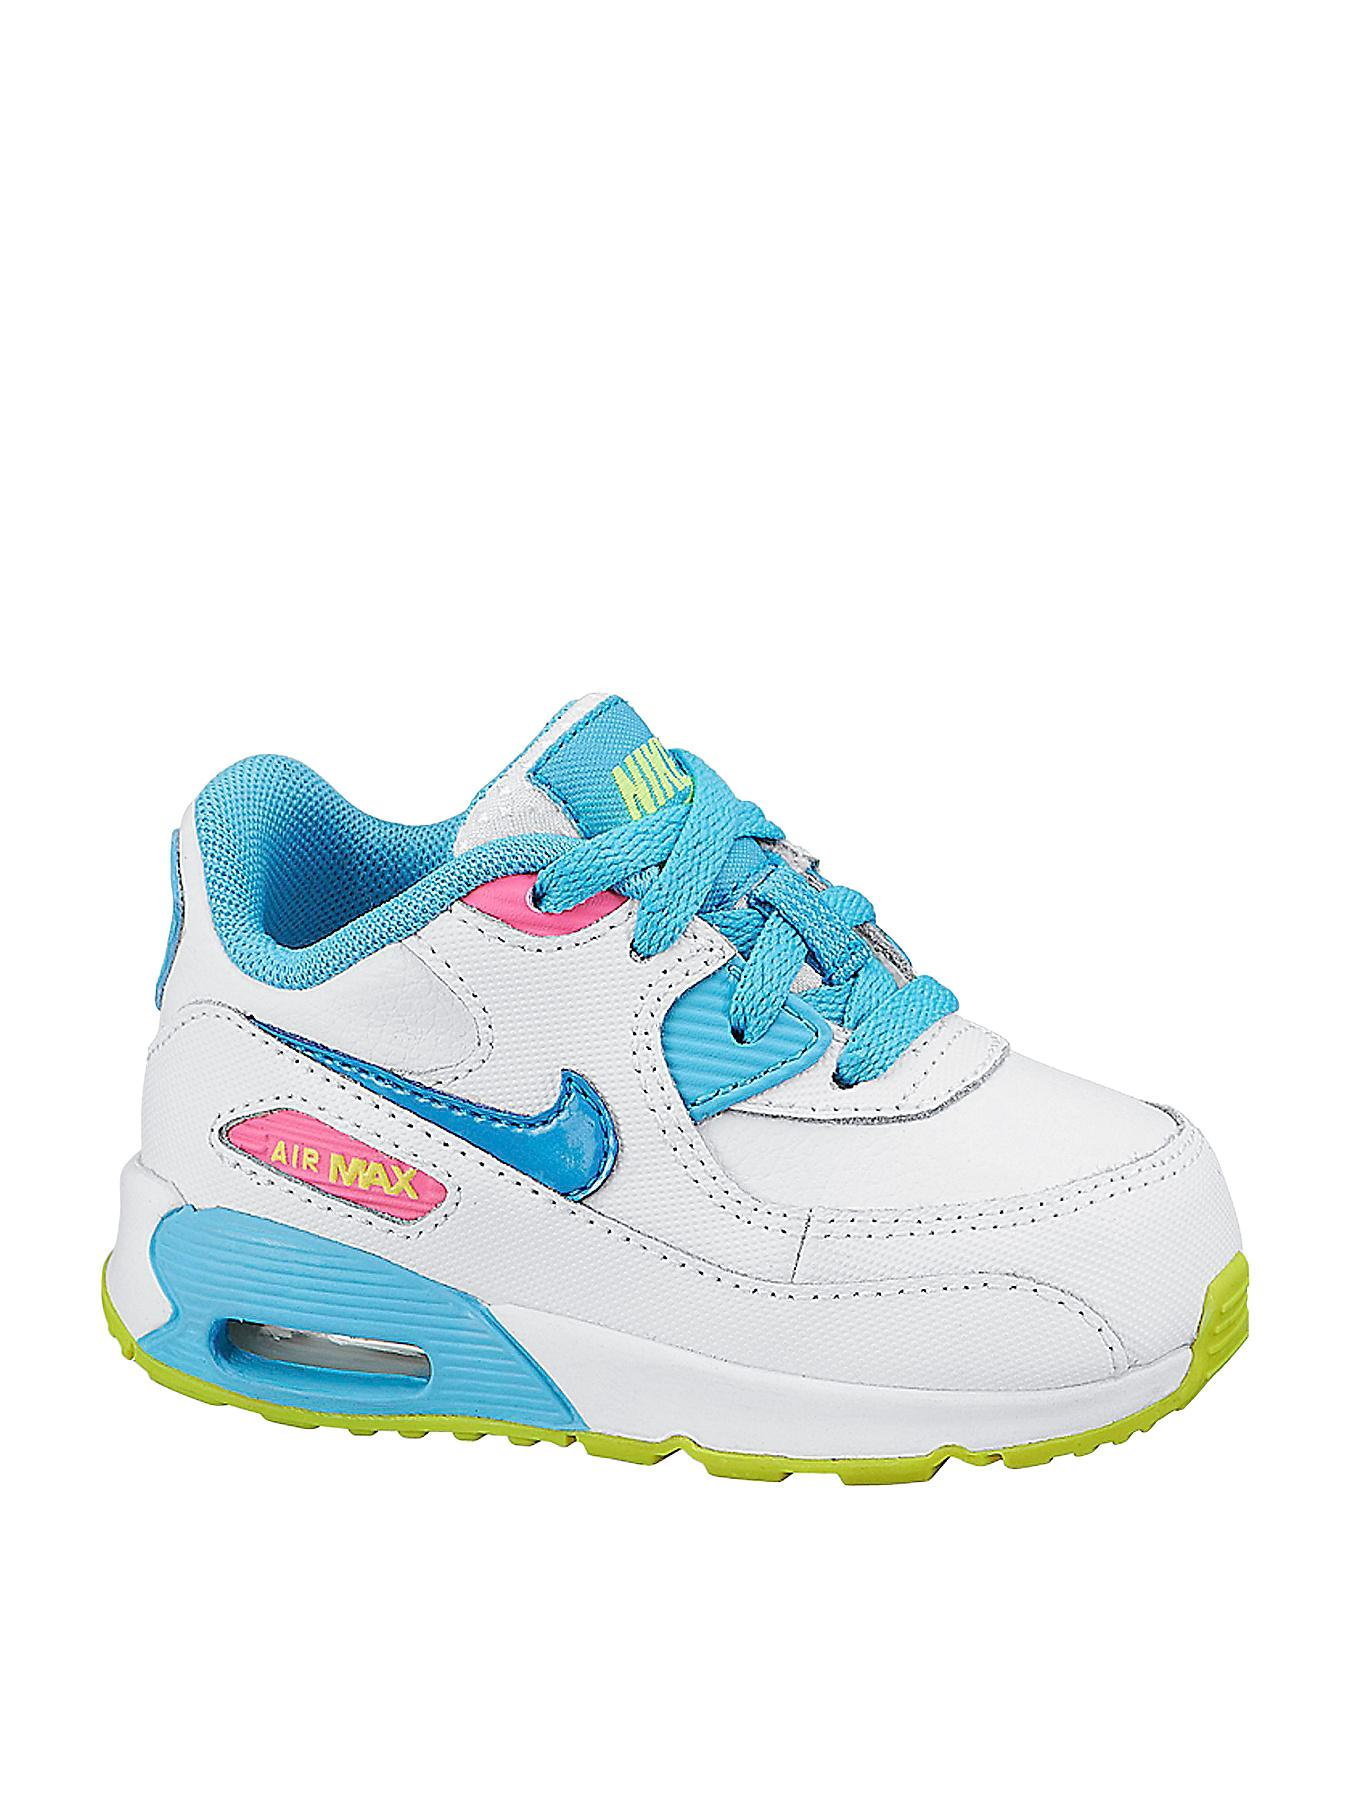 Nike Air Max 90 2007 Toddler Trainers - White/Blue - White, White